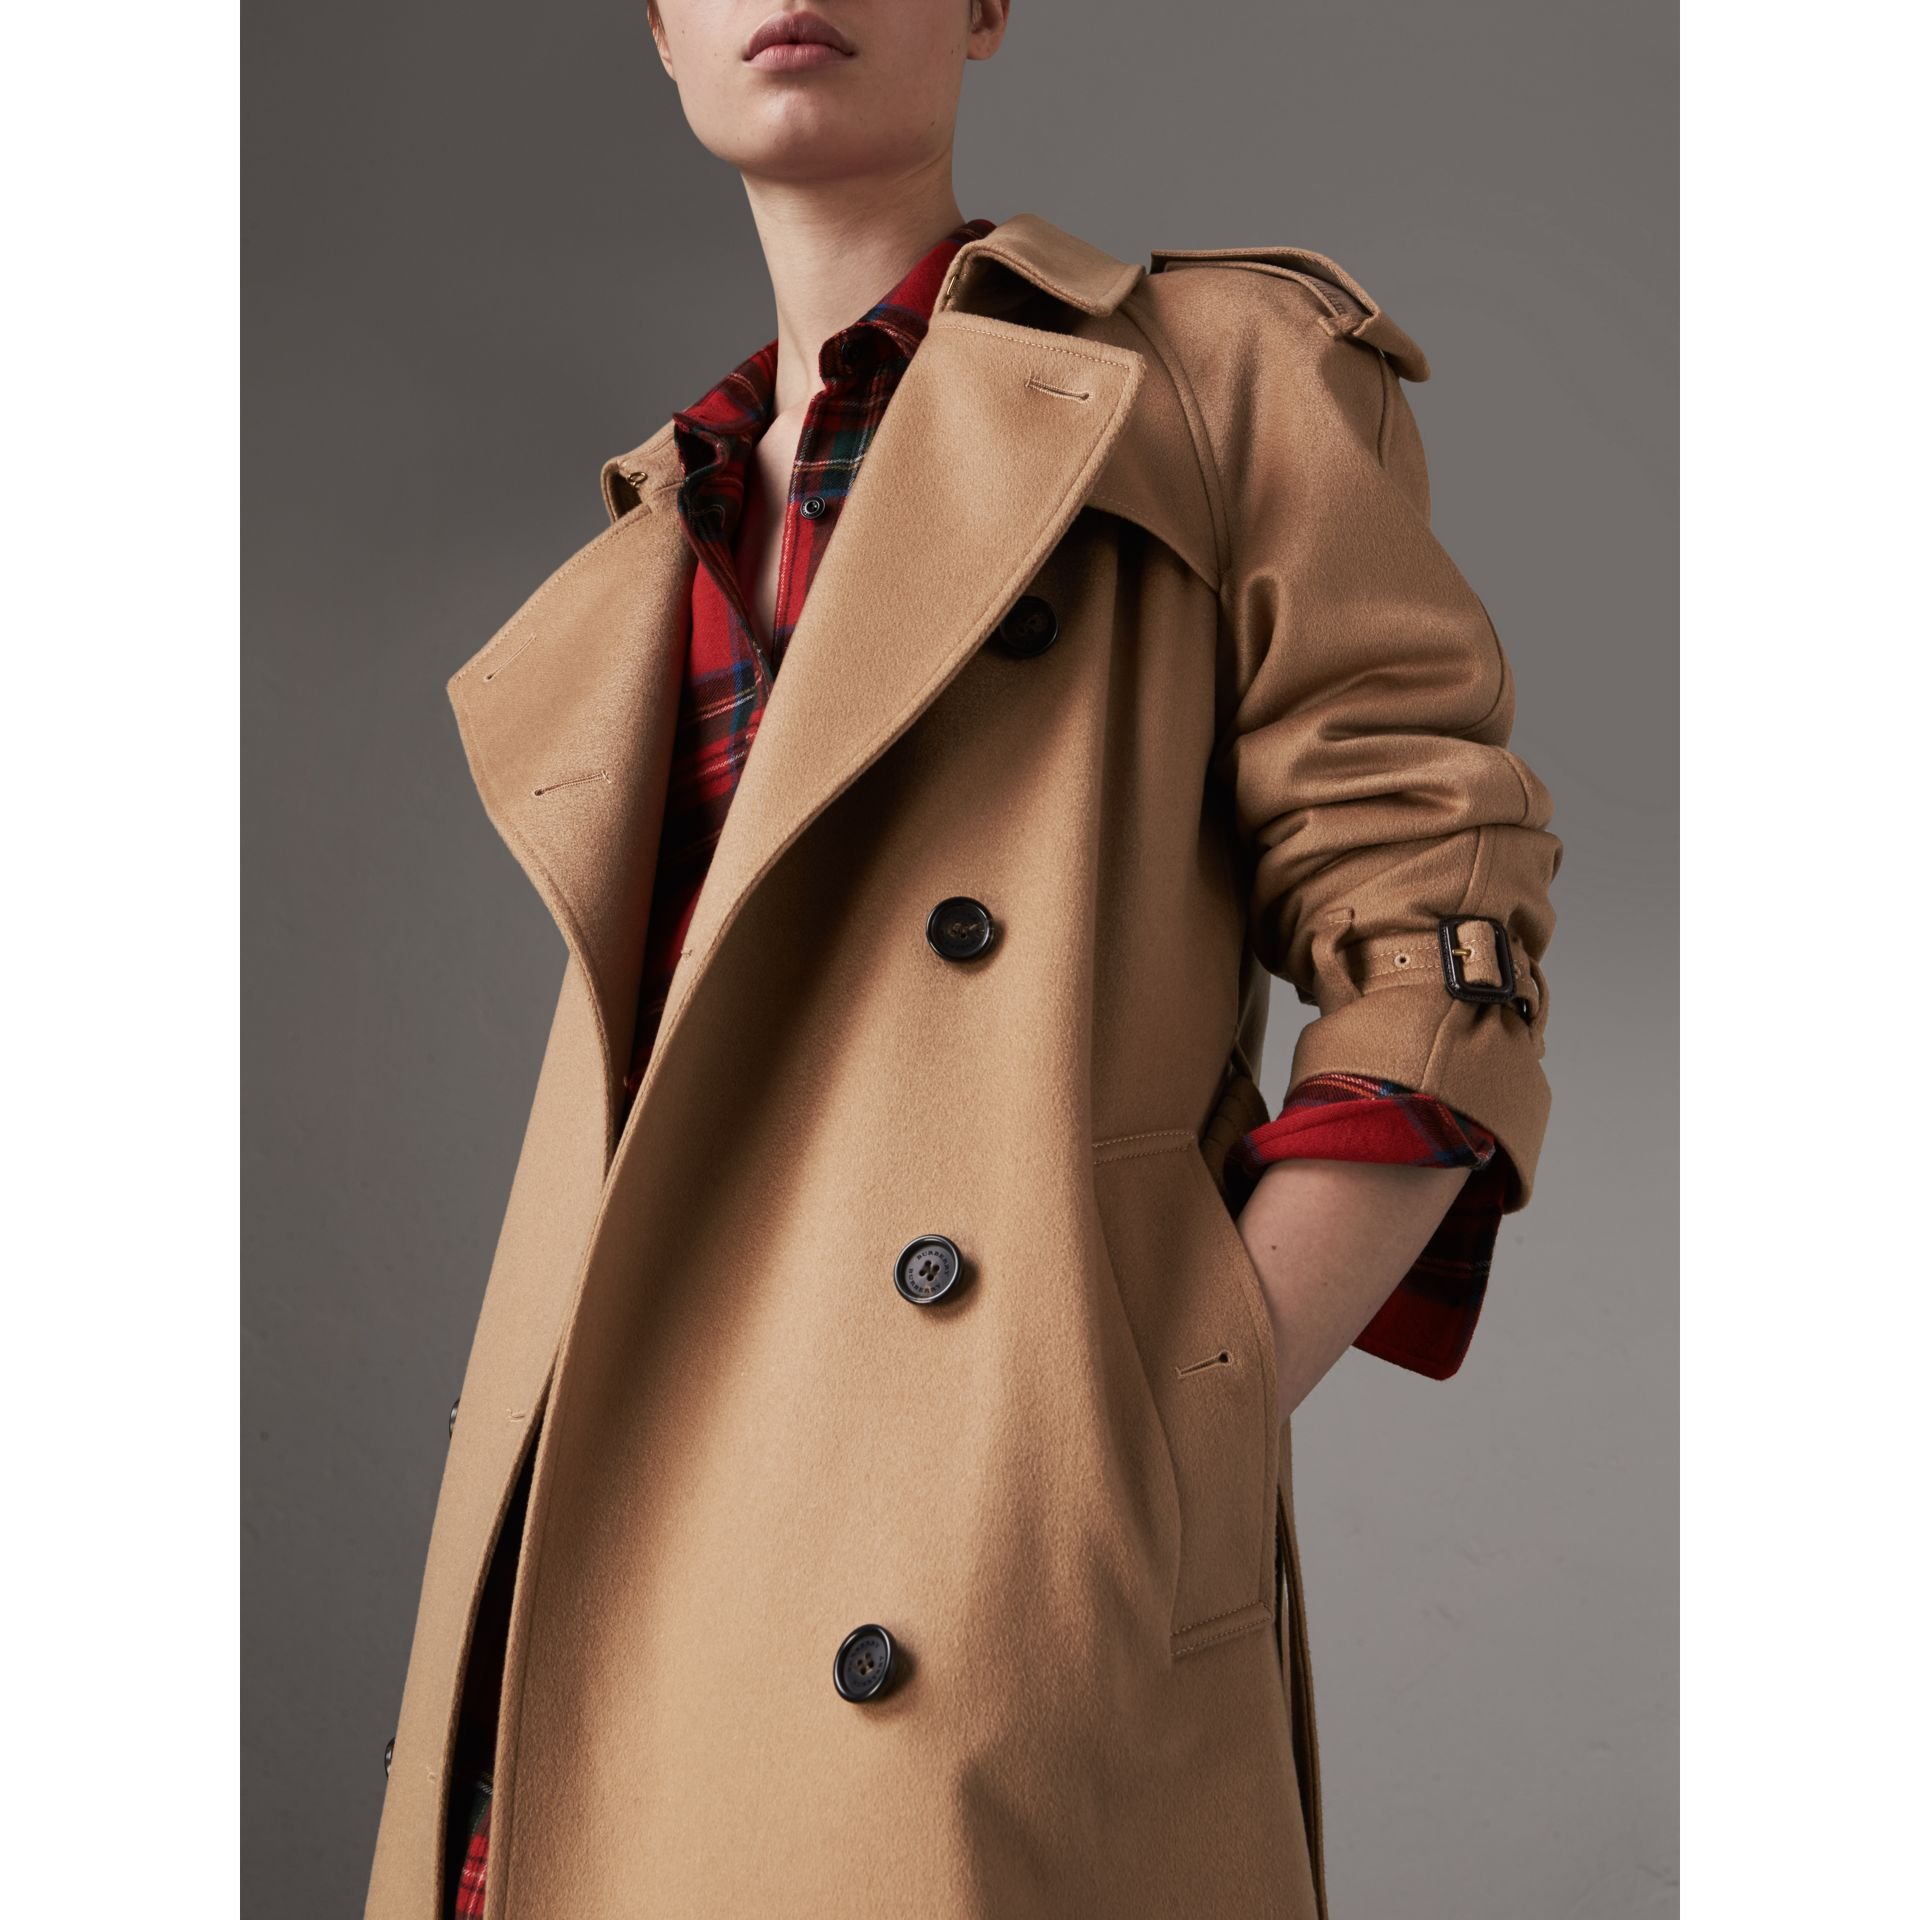 Cashmere Trench Coat in Camel - Women | Burberry Hong Kong - gallery image 4